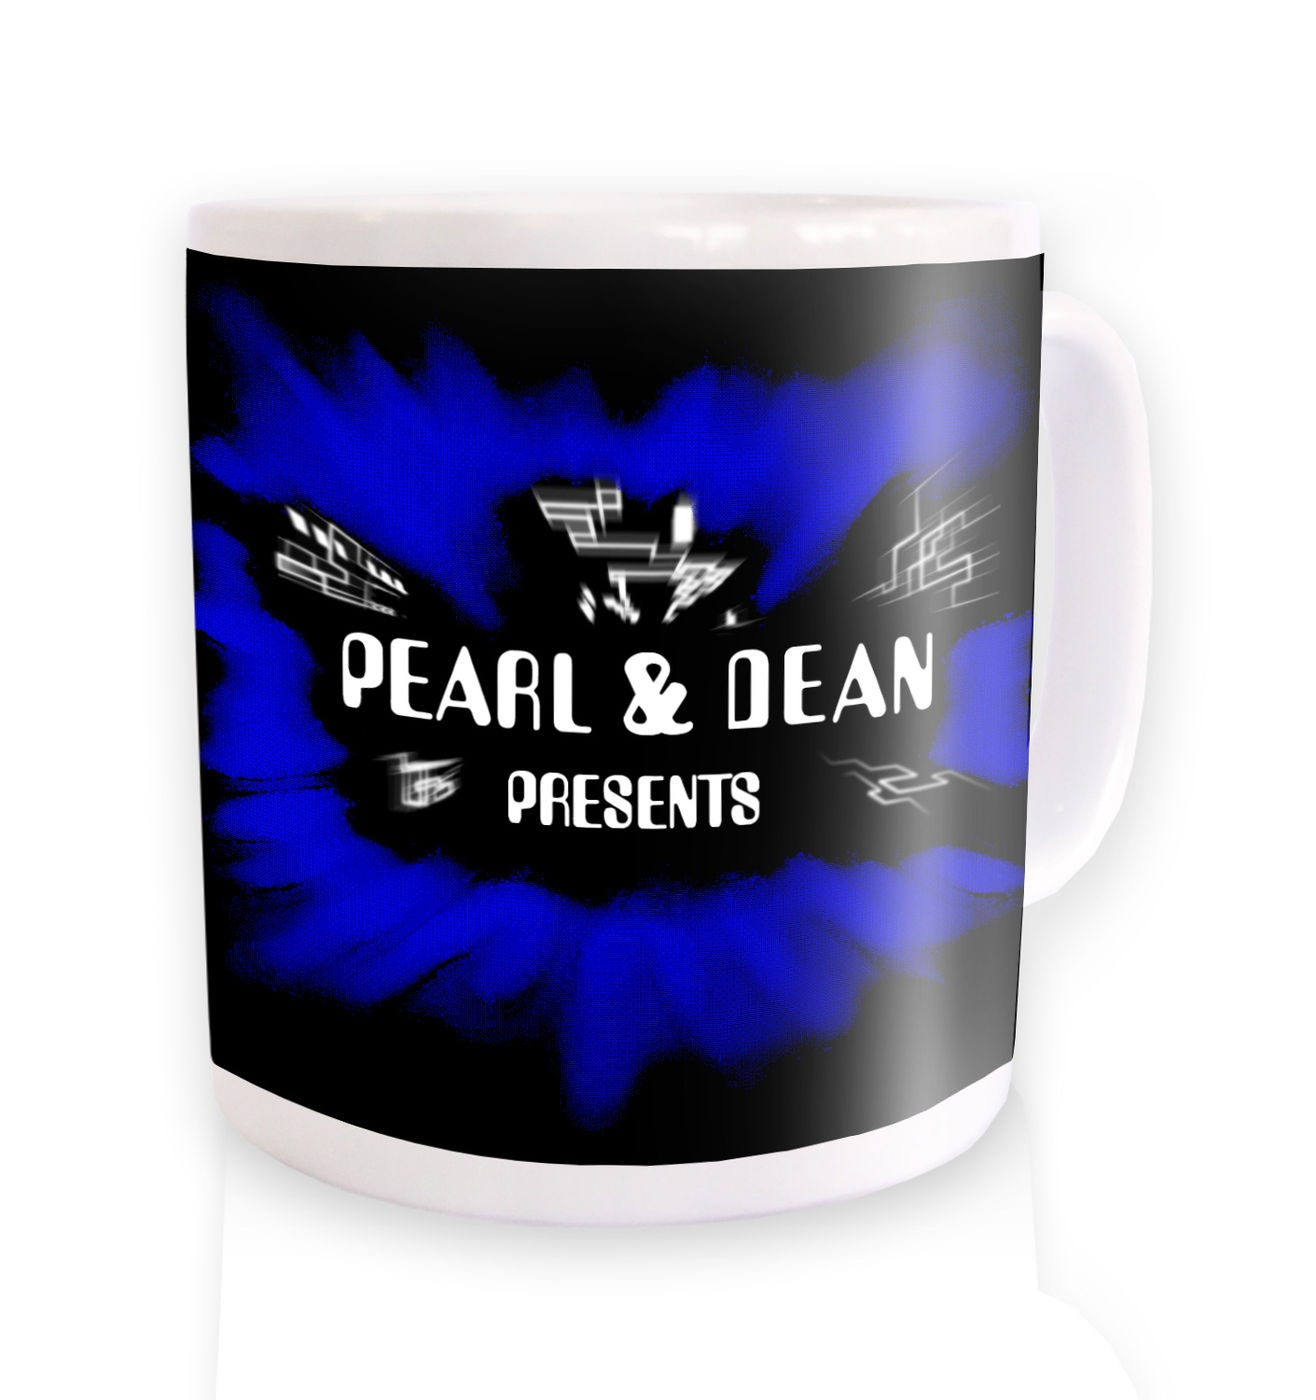 Official Pearl & Dean mug